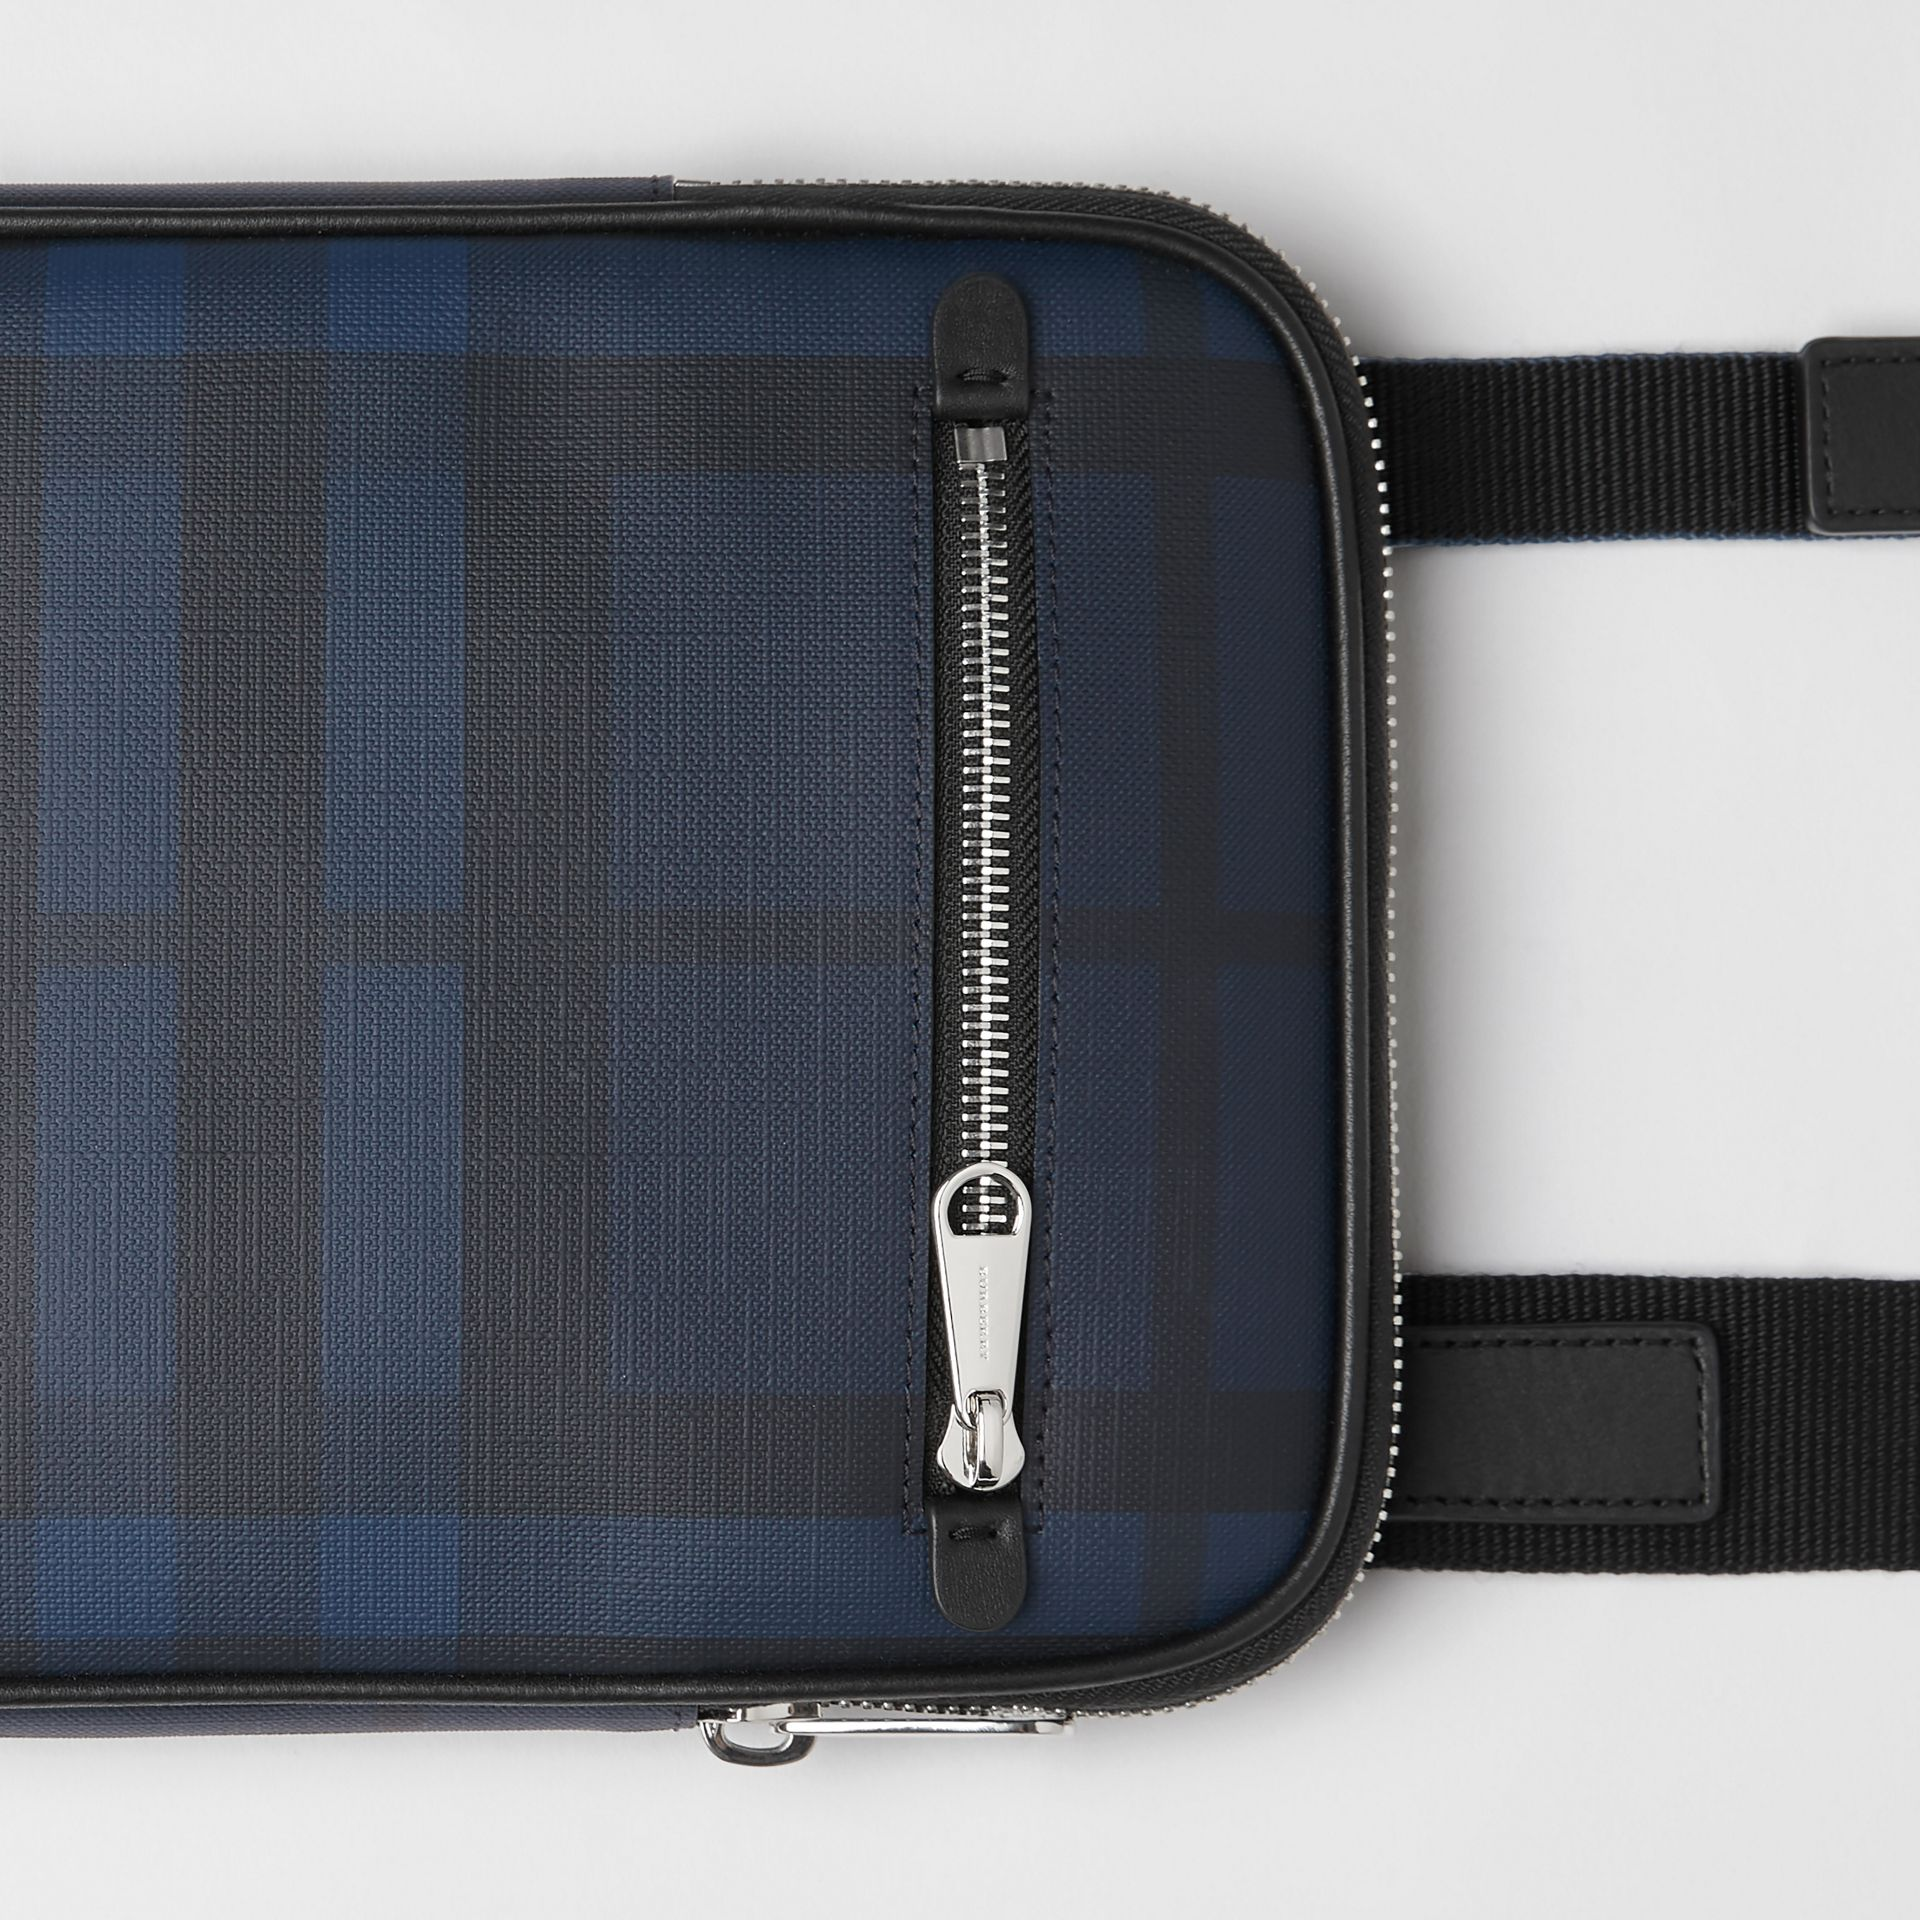 Slim London Check Crossbody Bag in Navy/black - Men | Burberry - gallery image 1